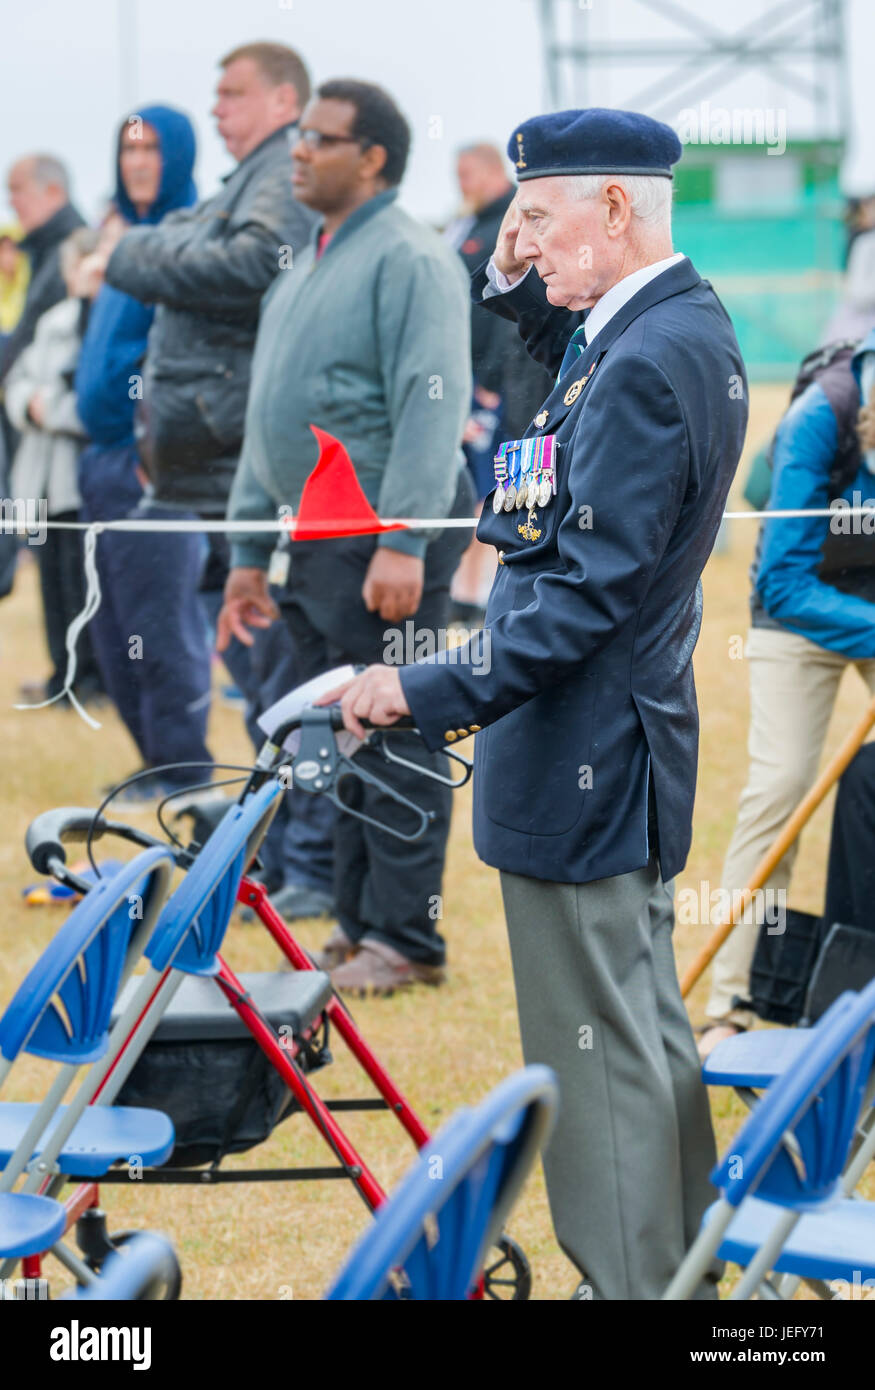 Veteran military officer giving a salute at the 2017 Armed Forces Day in Littlehampton, West Sussex, England, UK. - Stock Image